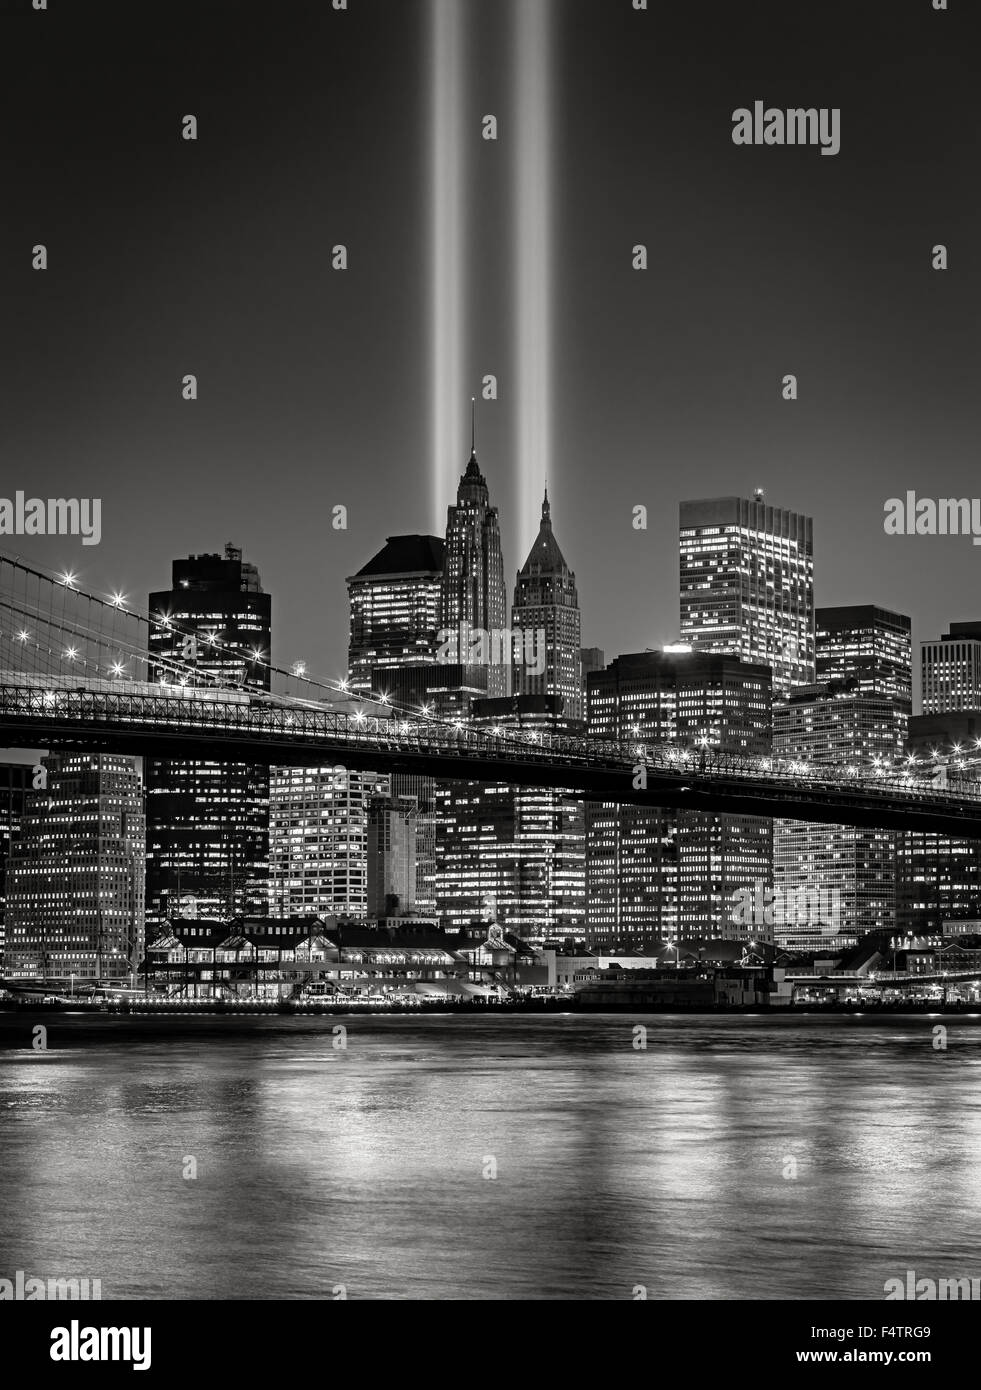 Der Tribute in Light, in Lower Manhattan mit beleuchteten Wolkenkratzern des Financial District in New York City Stockbild